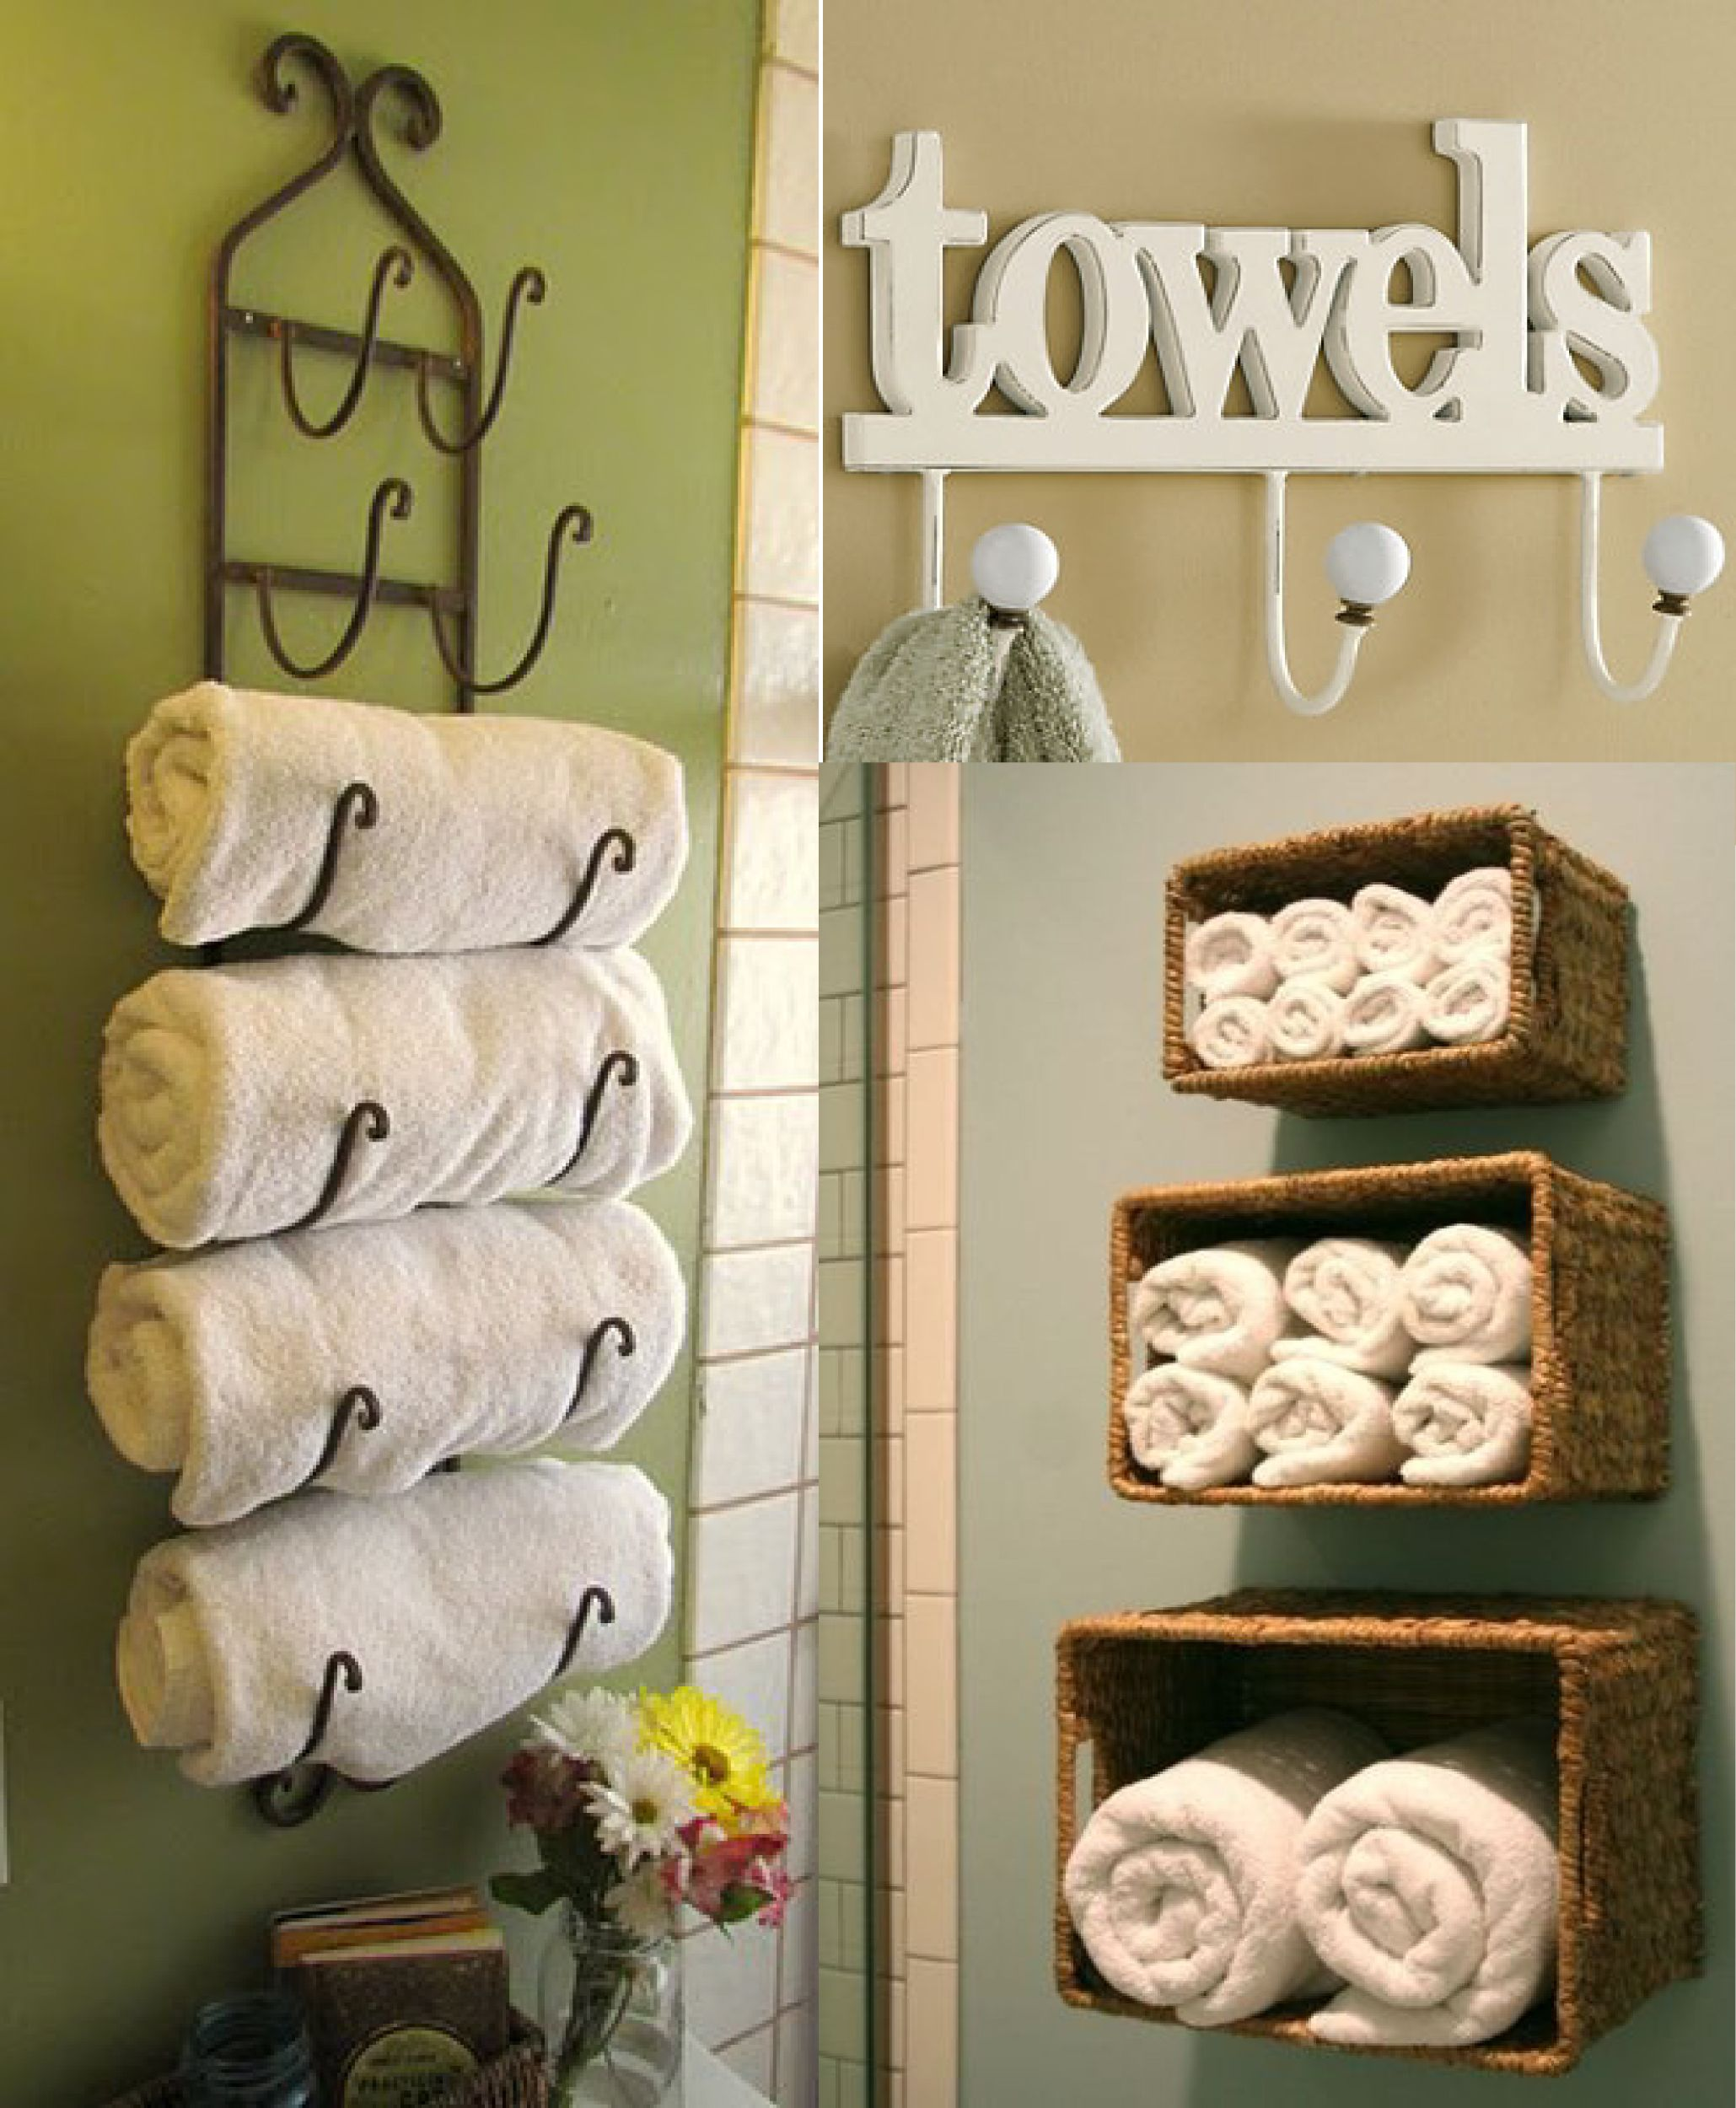 Bathroom Storage Ideas Pinterest By Shannon Rooks Corporate - Decorative towel hangers for small bathroom ideas